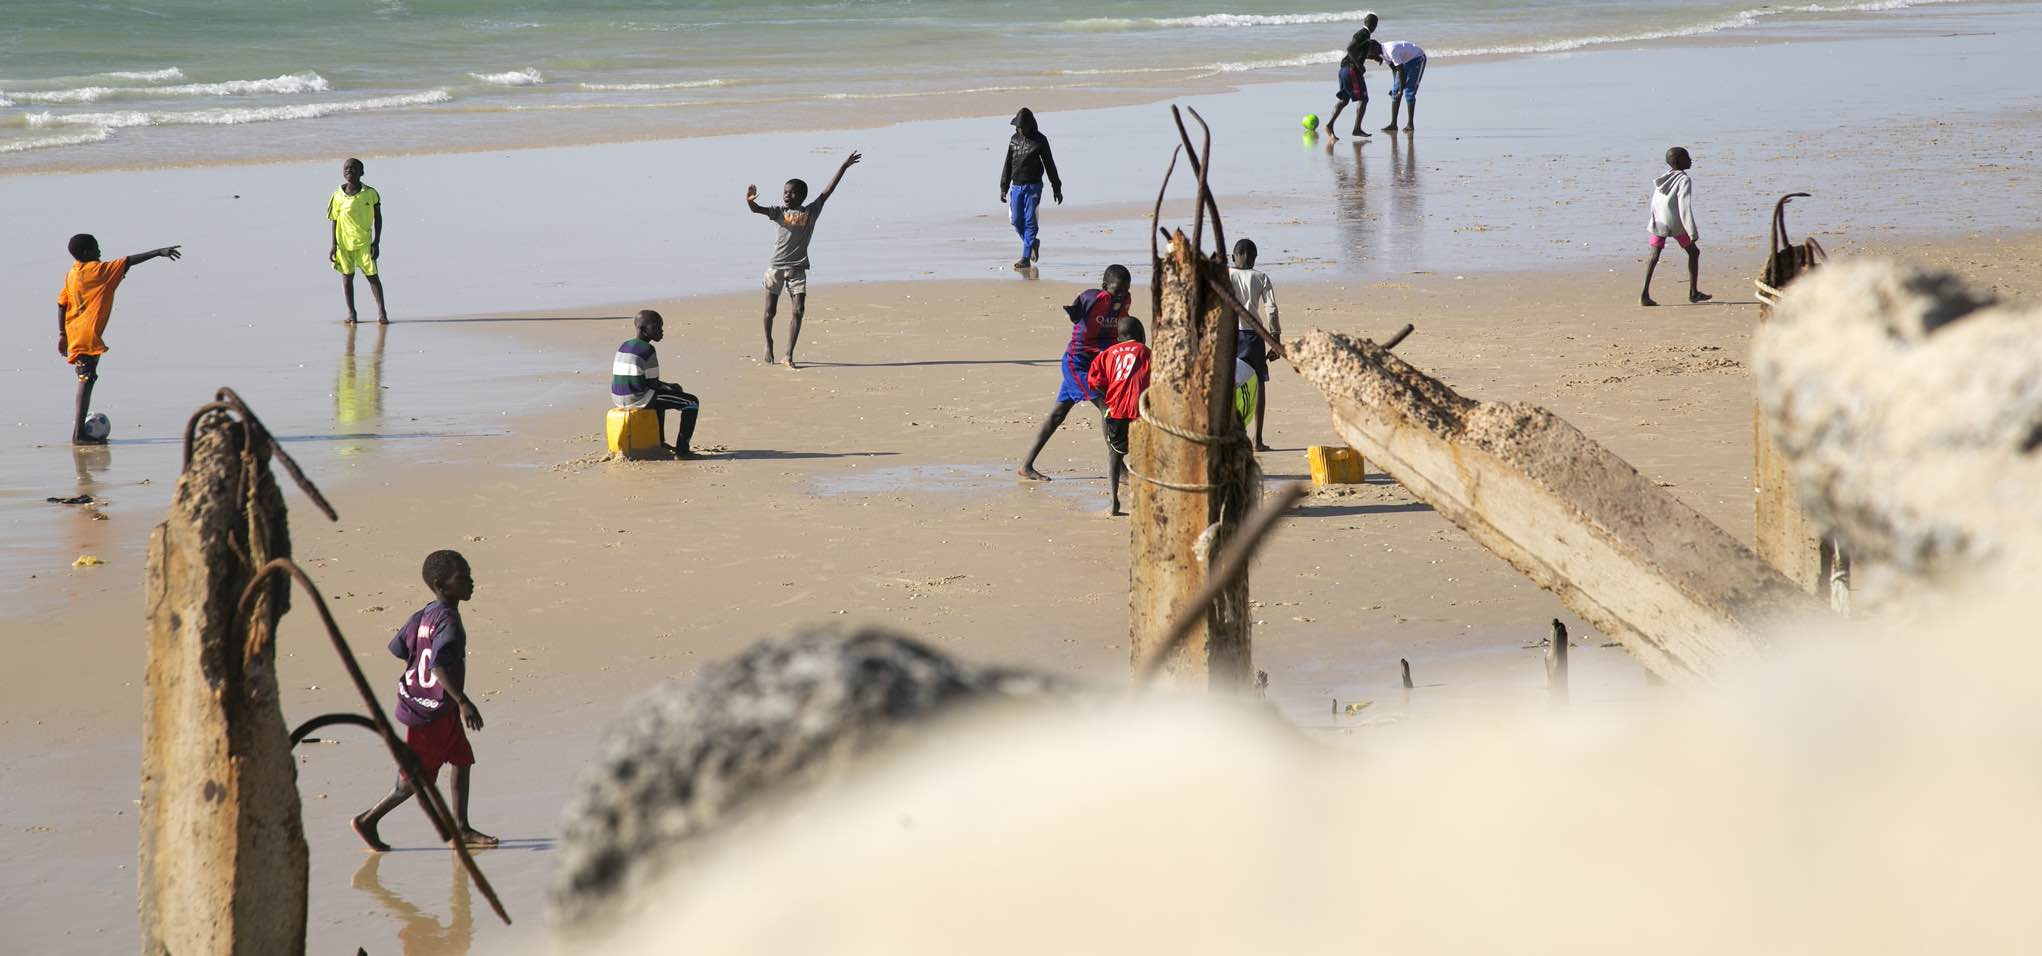 Beach games in Senegal (Photo: World Bank/Flickr)